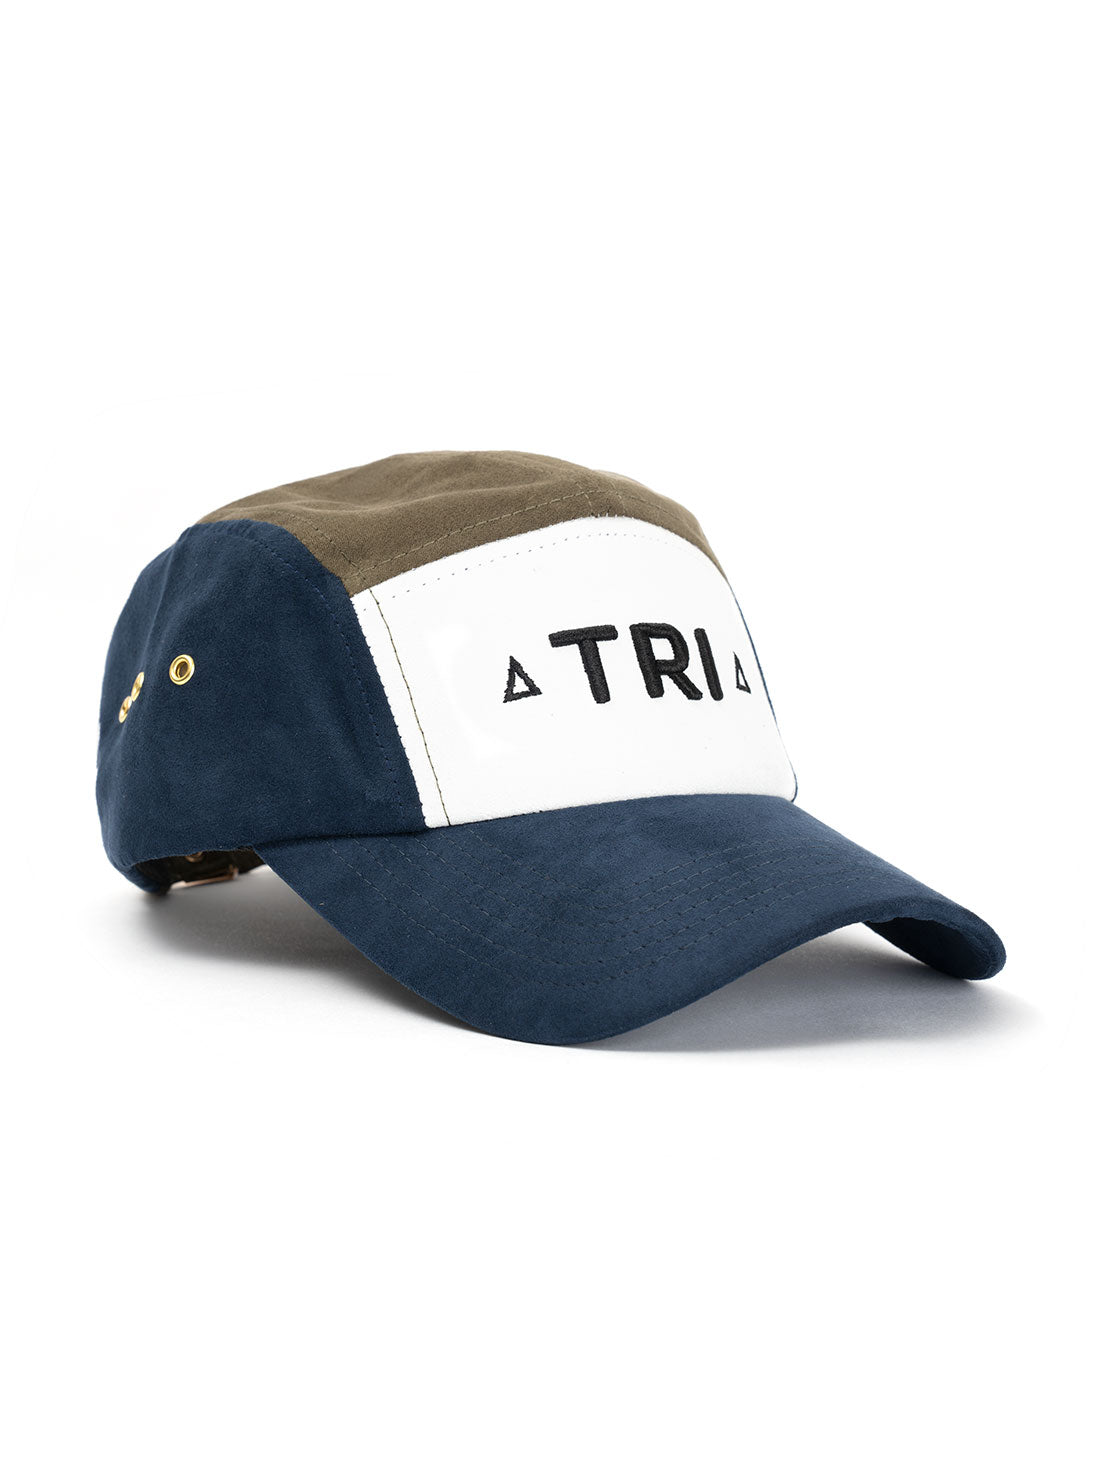 TRI 5 Panel NAVY/OLIVE SUEDE - Triangulo Swag